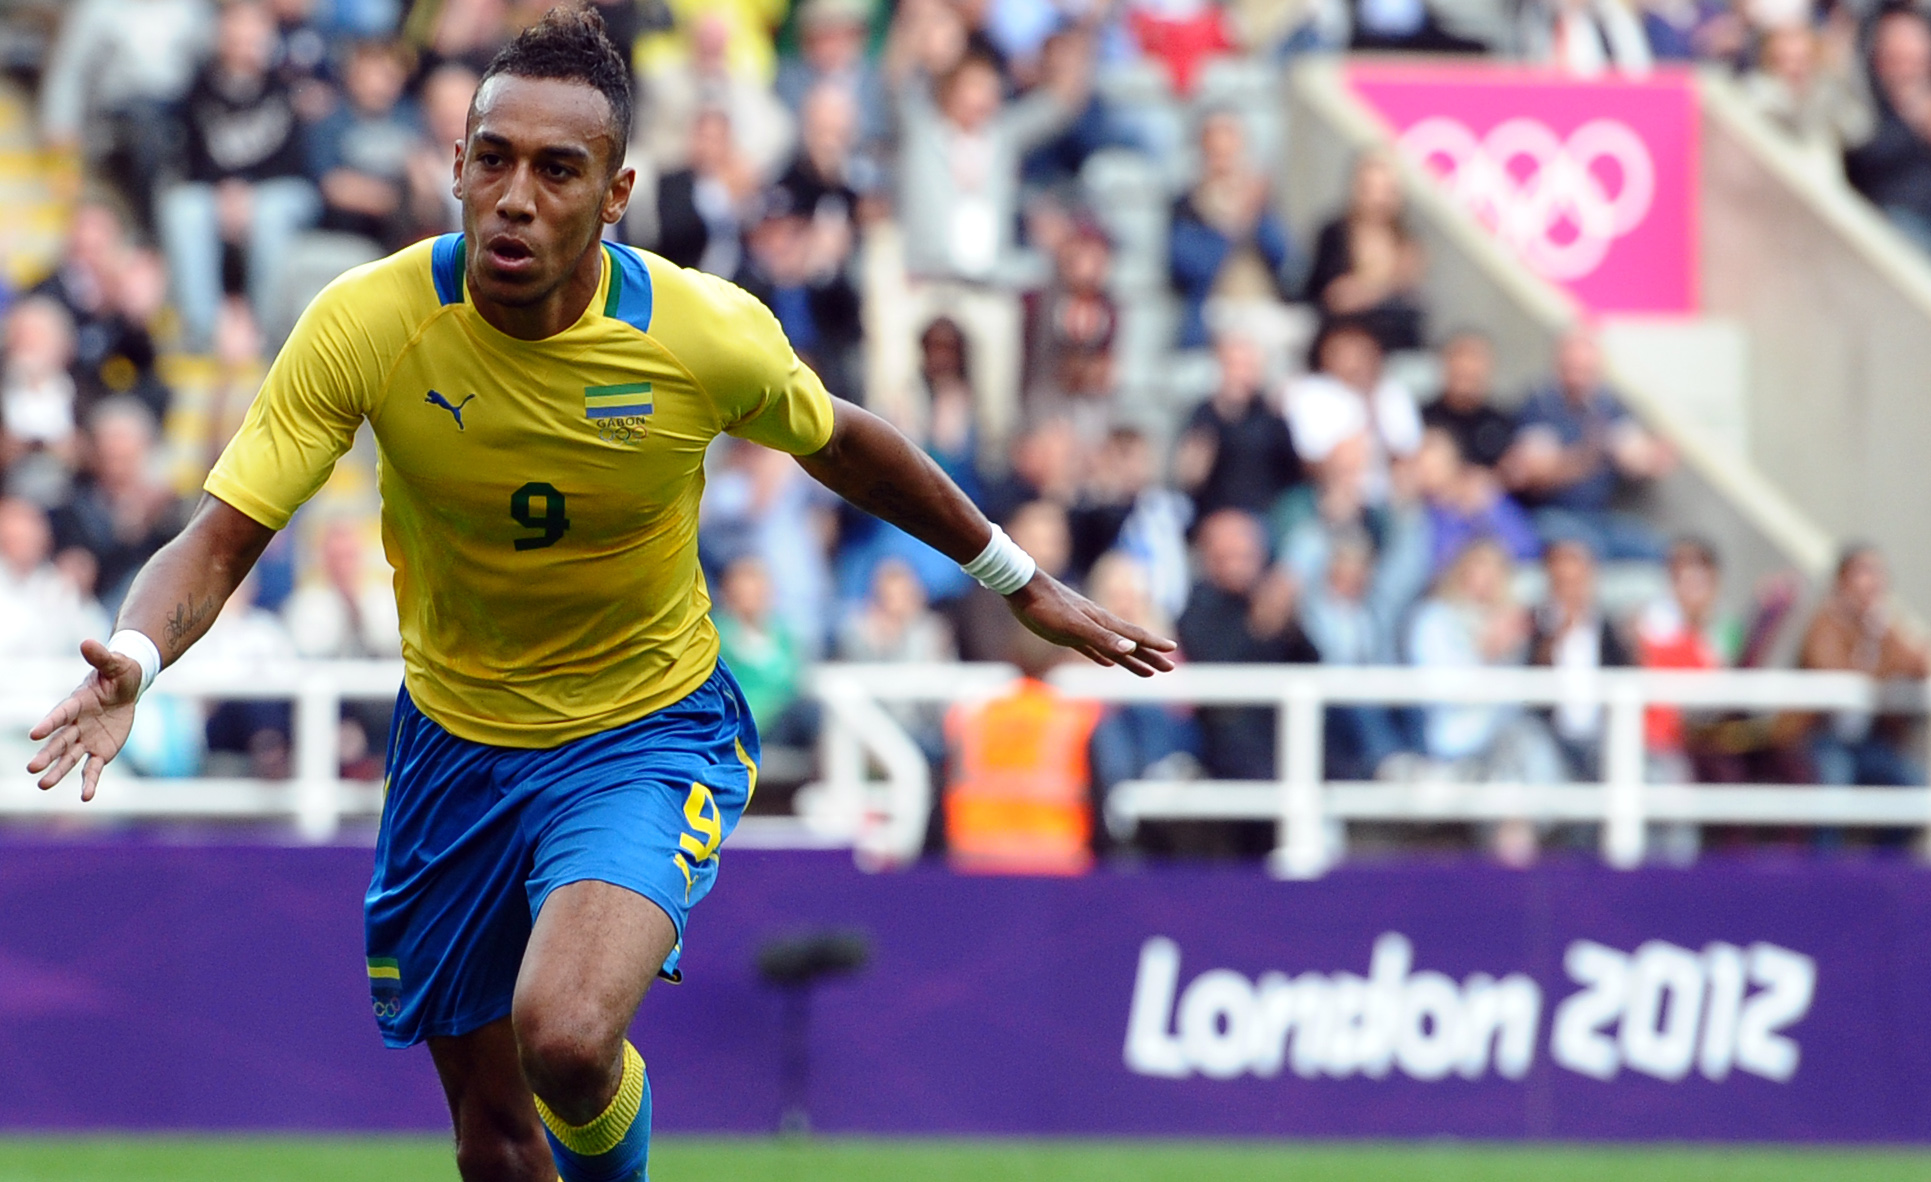 Gabon's Pierre Aubameyang celebrates after scoring during the 2012 Olympic mens football match between Gabon and Switzerland at St James' Park in Newcastle-upon-Tyne, north-east England on July 26, 2012. AFP PHOTO/PAUL ELLIS (Photo credit should read PAUL ELLIS/AFP/GettyImages)